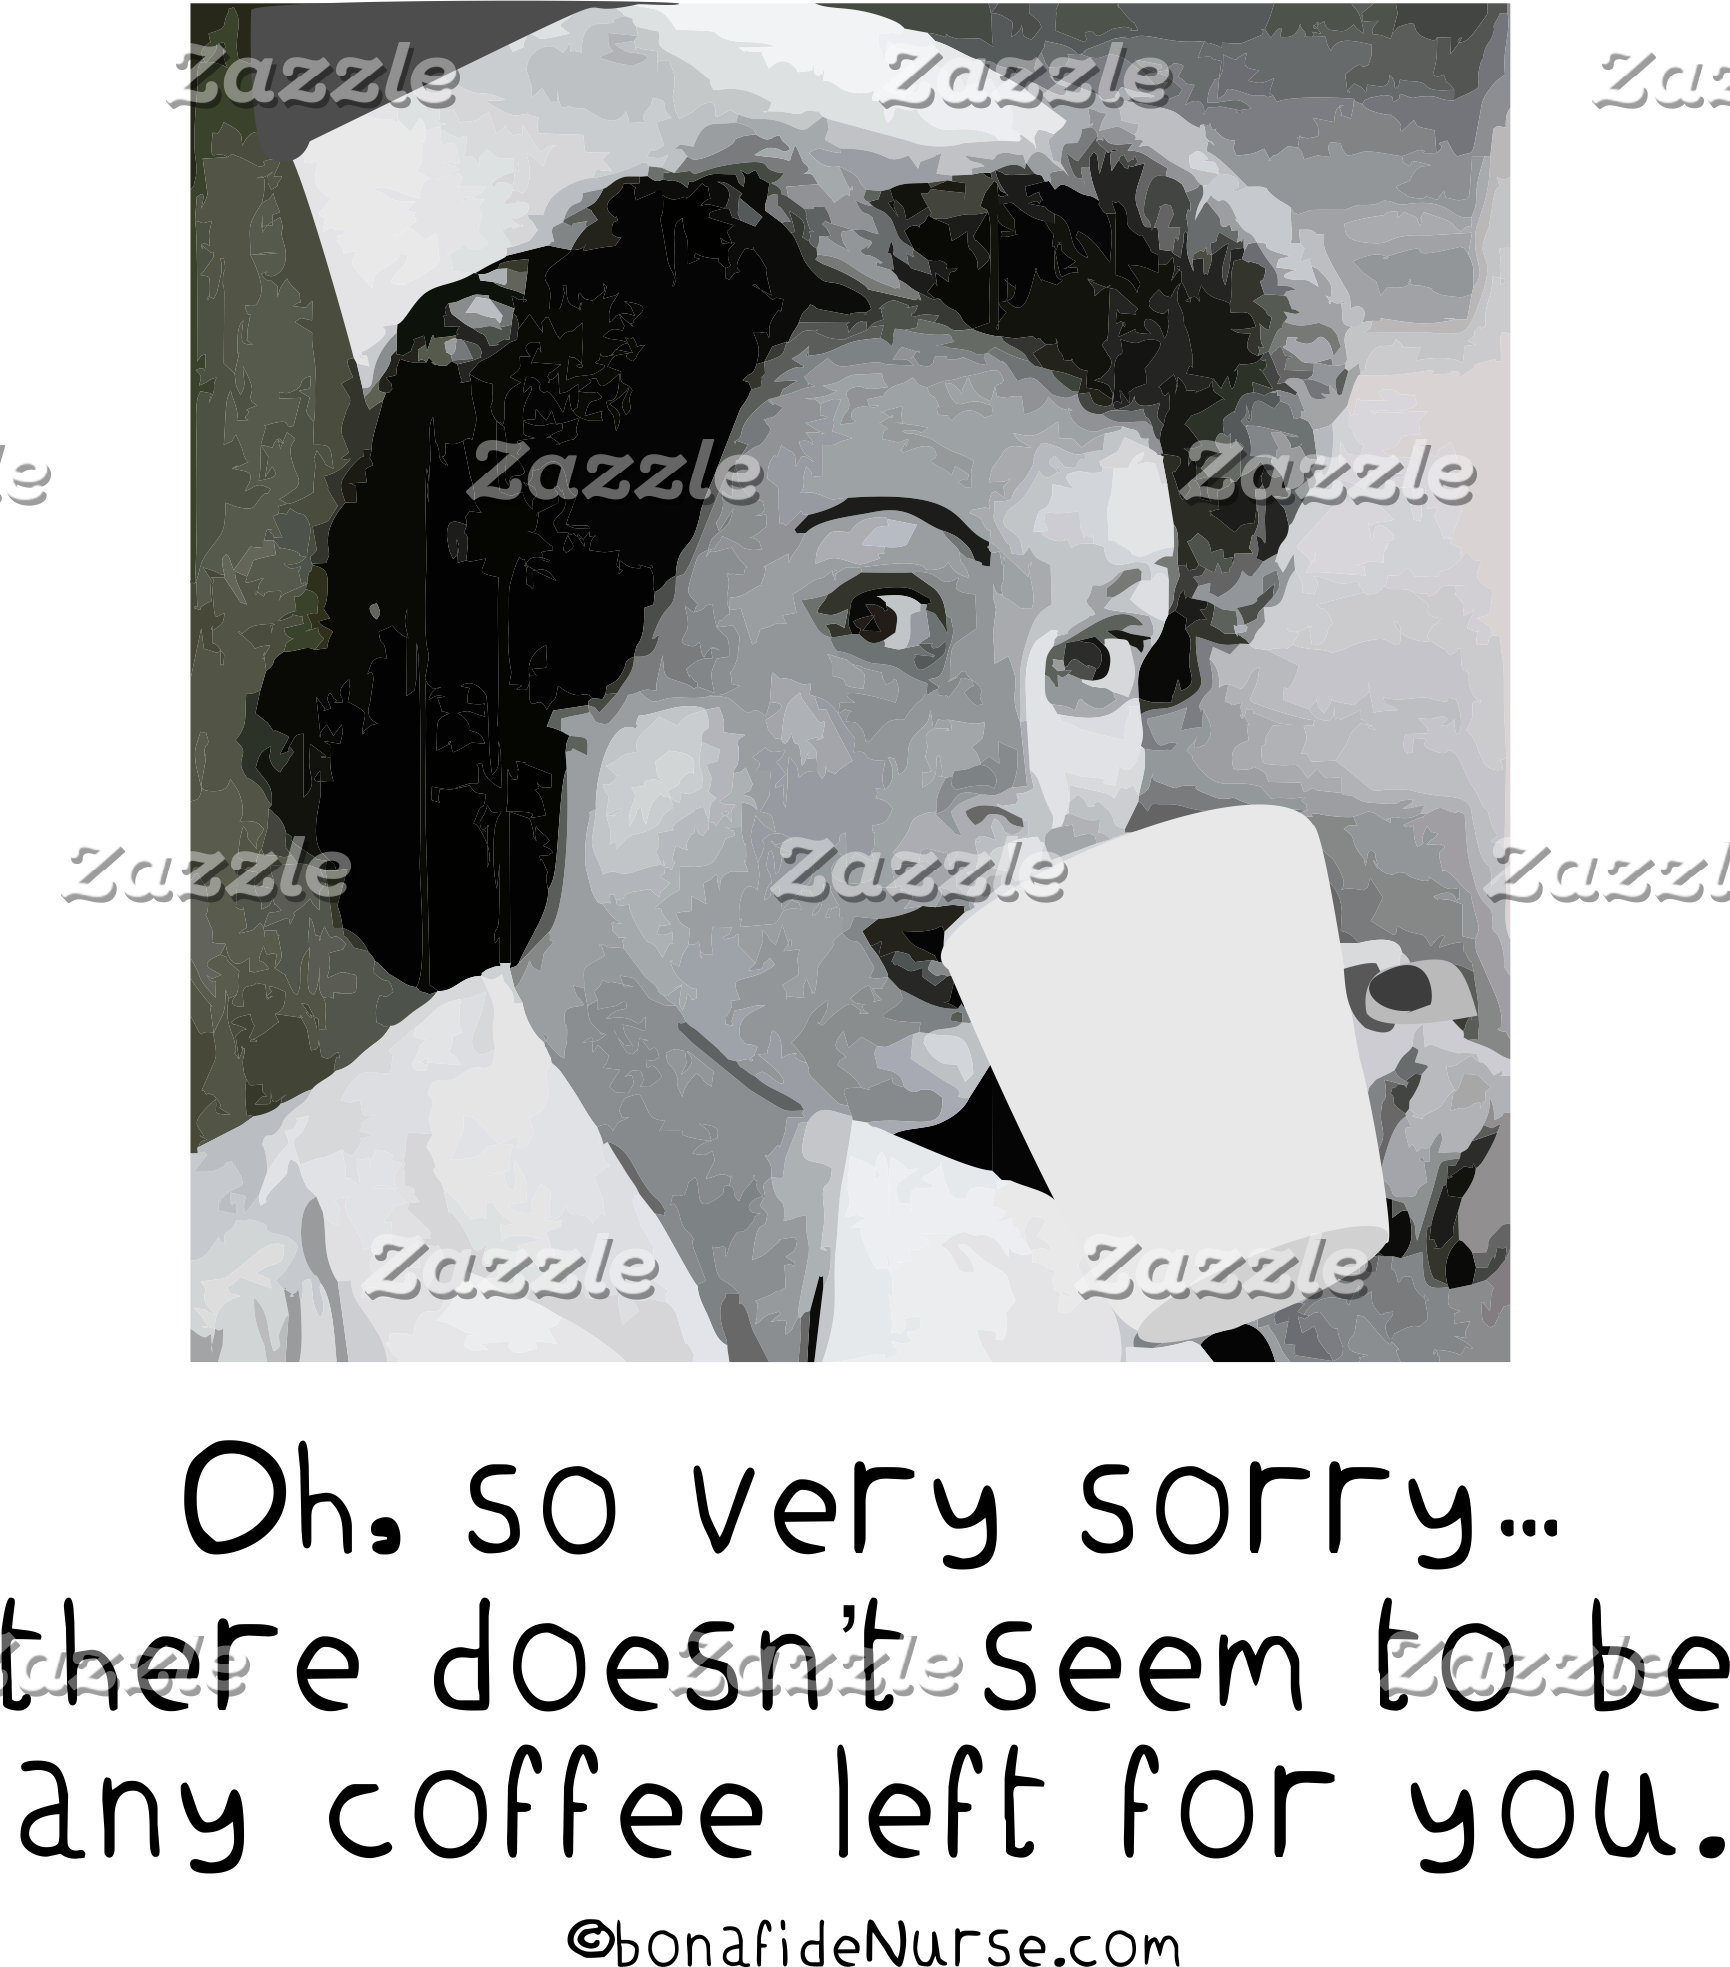 Nurse - So Very Sorry ...No Coffee for You.